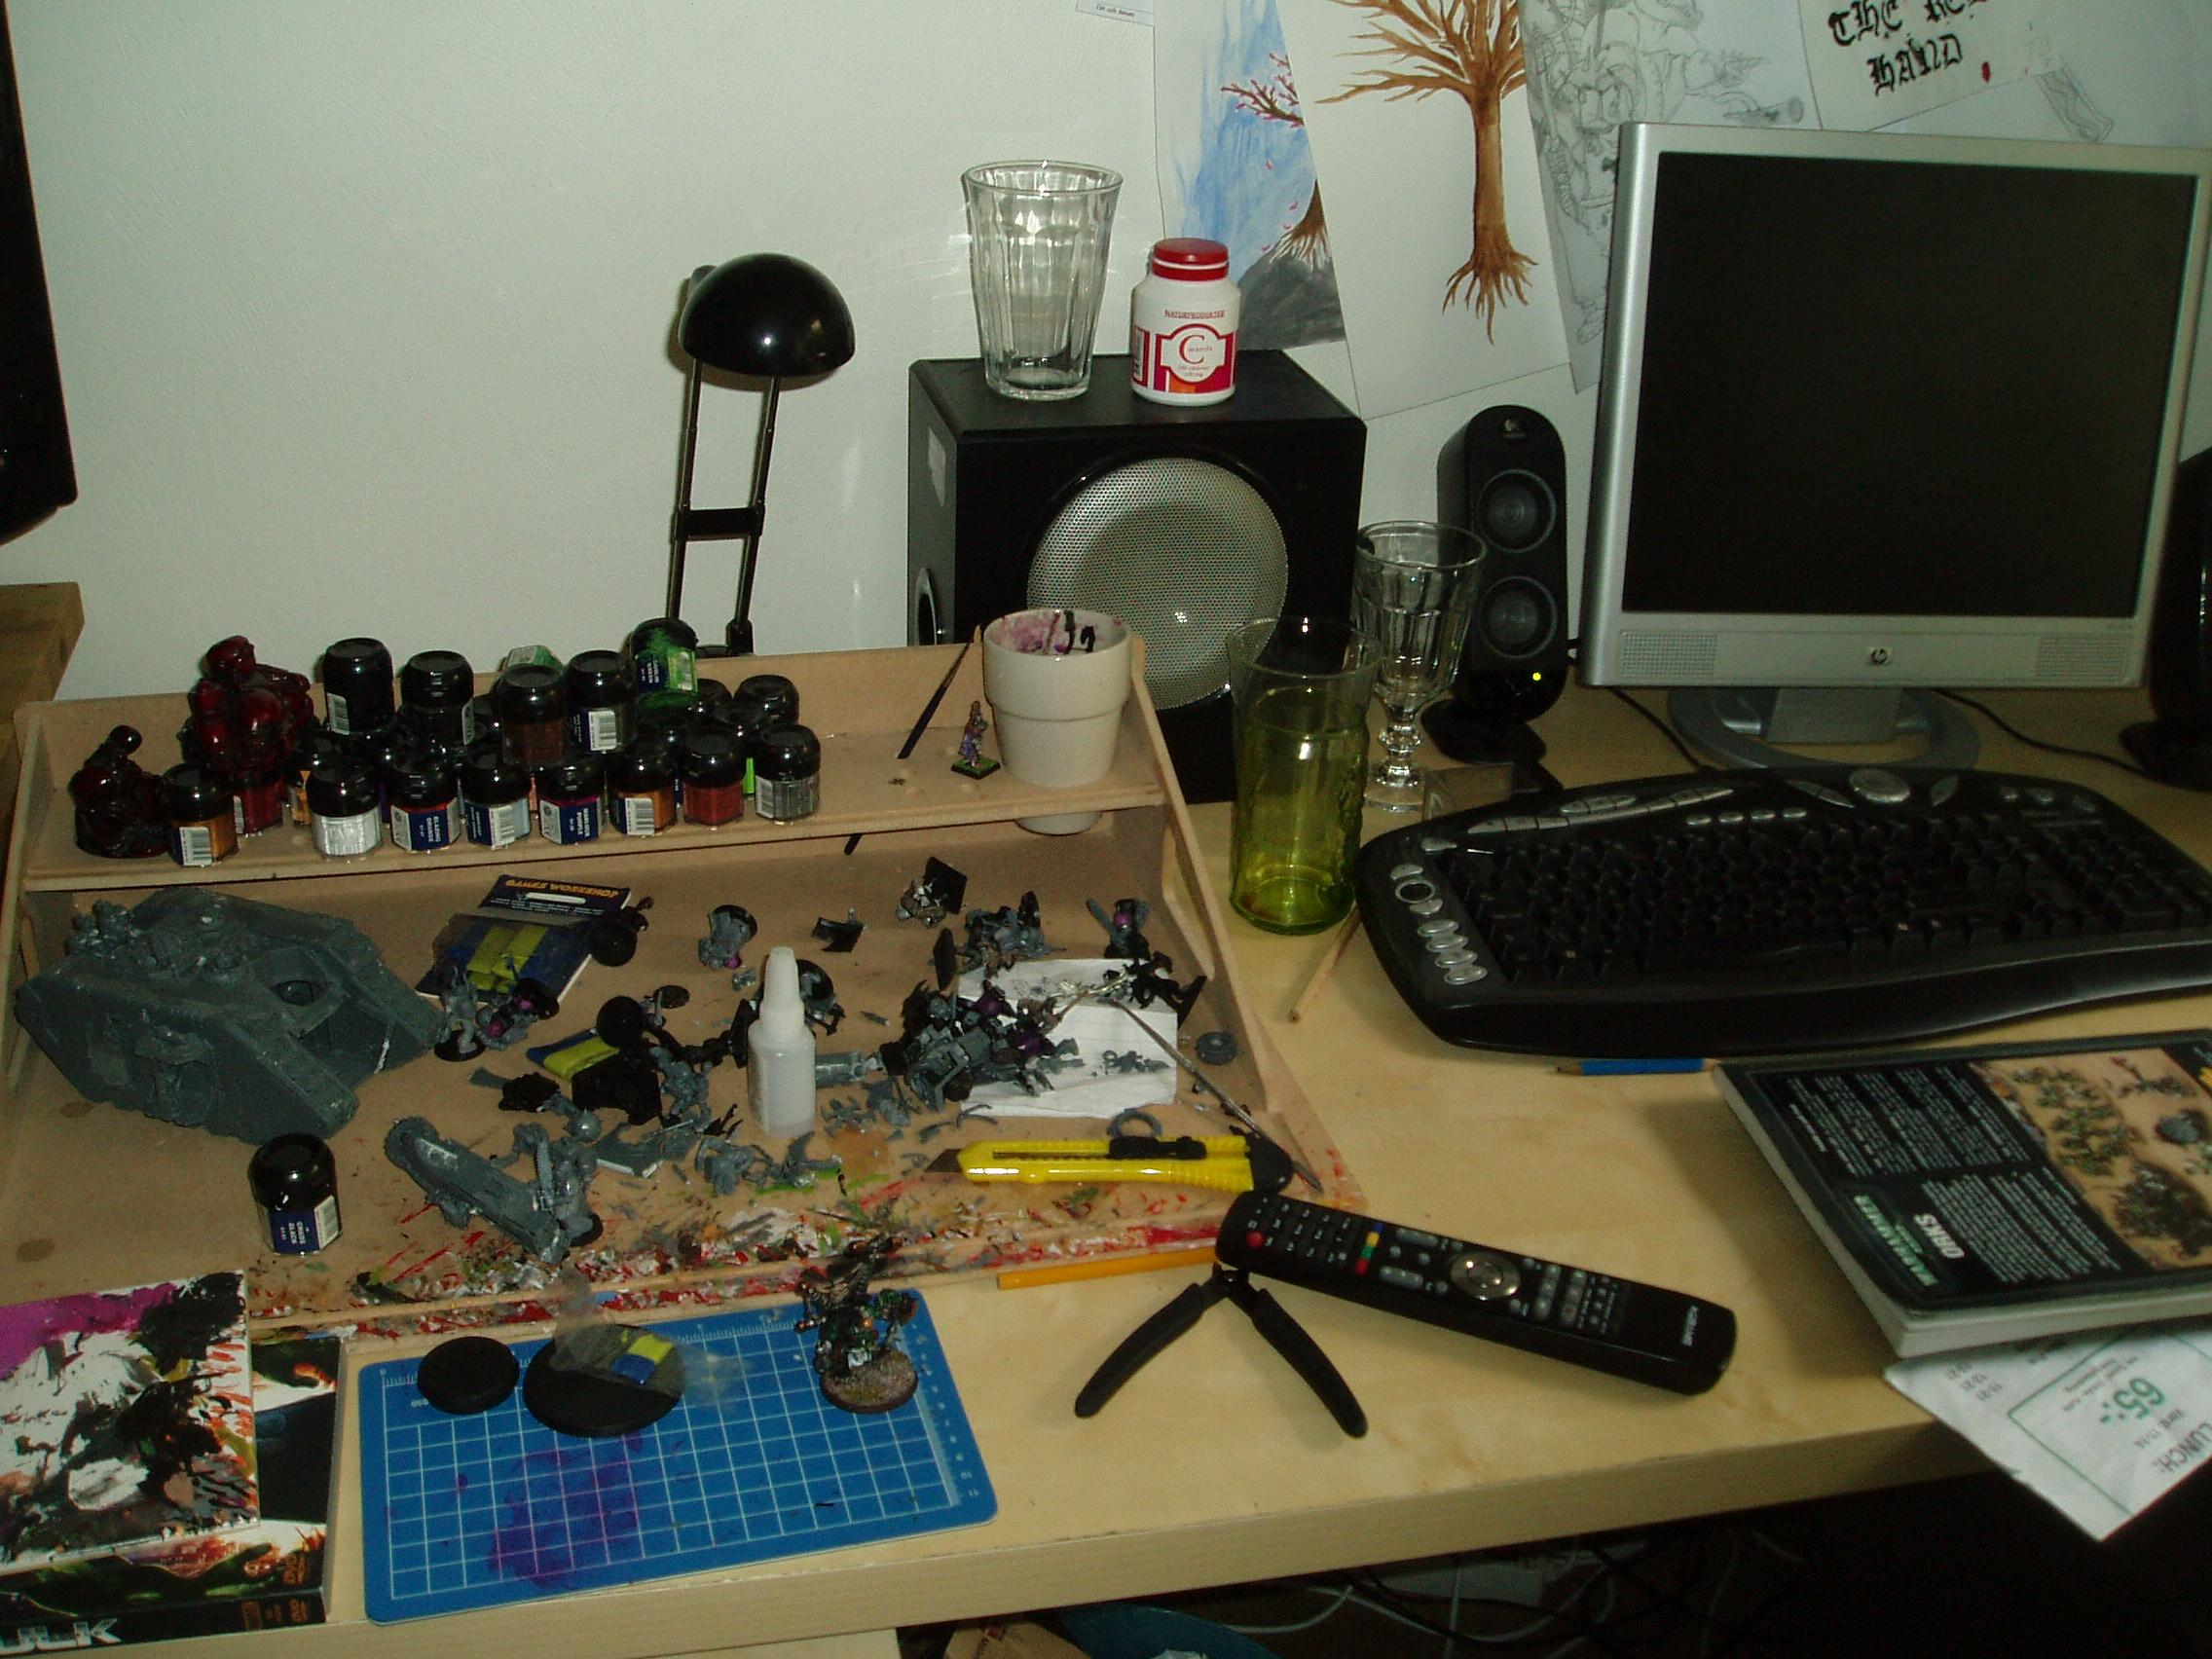 a pic of my current workplace, not fancy but it works :D